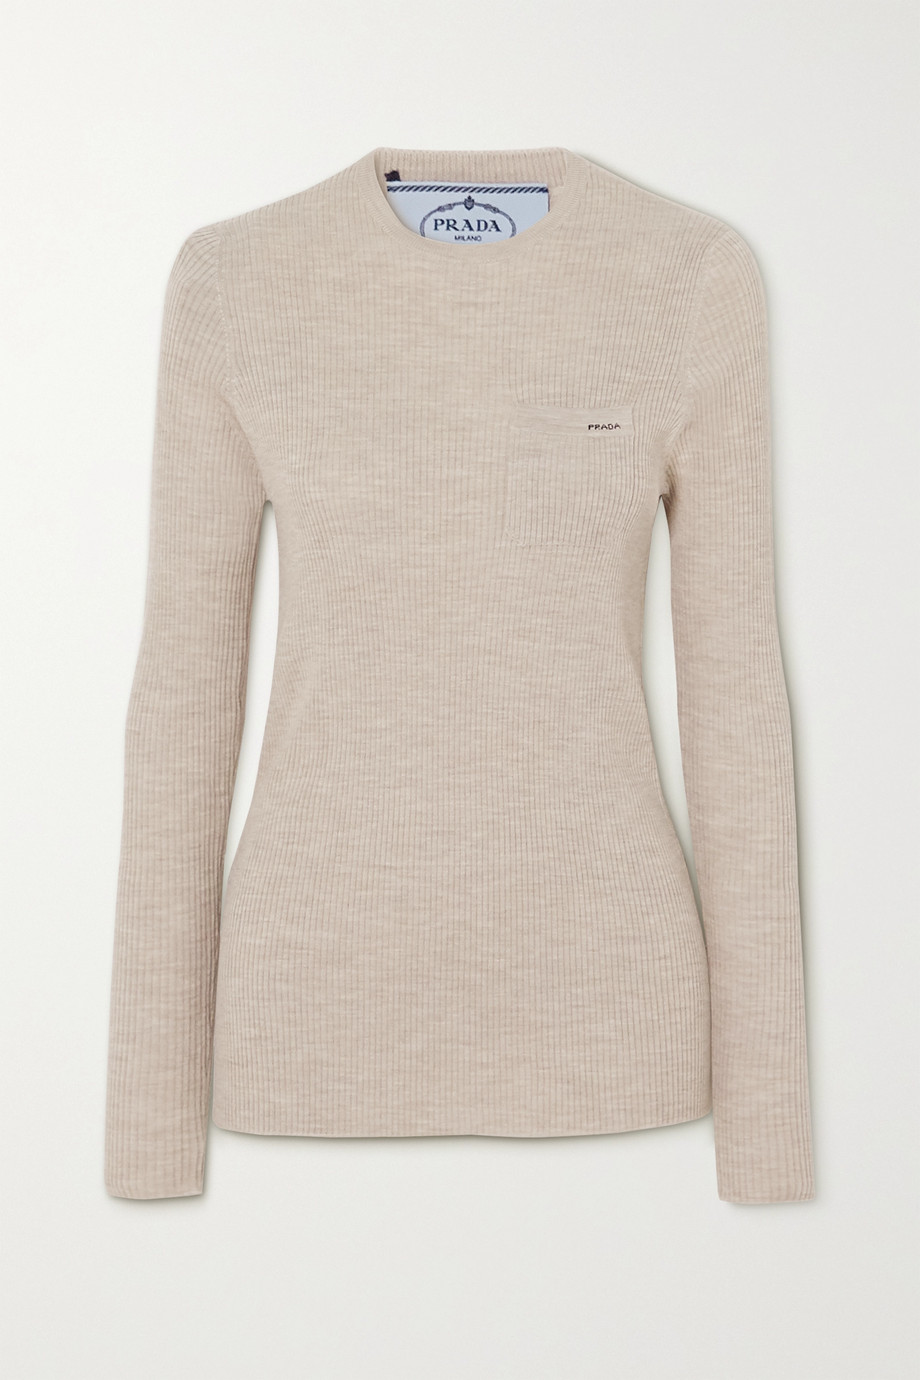 Prada Ribbed wool-blend sweater